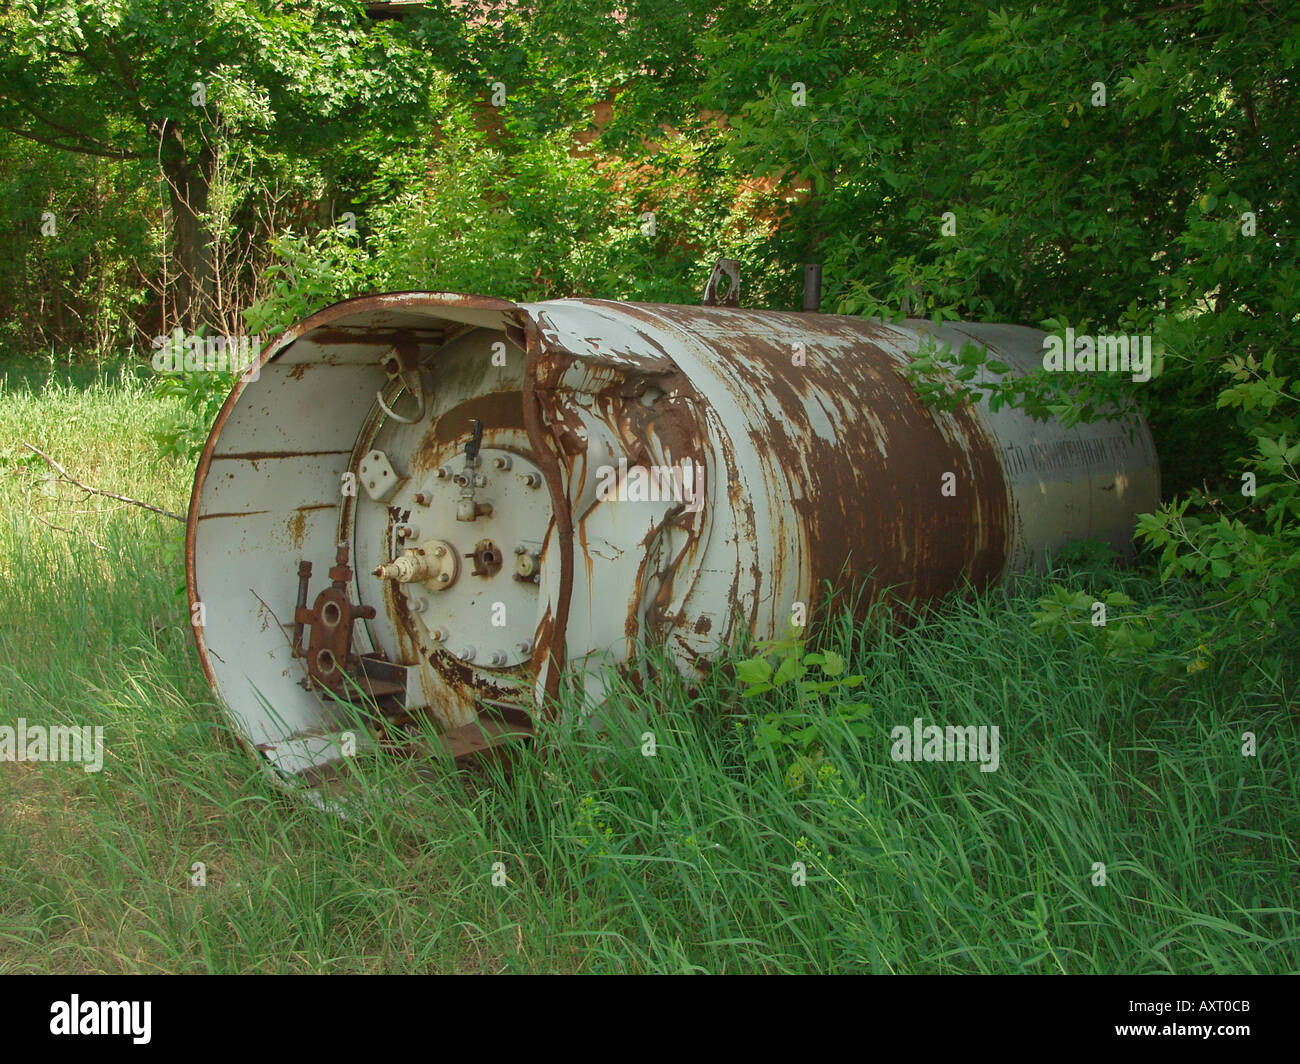 Abandoned gas cylinder in village close to Ukraine Belarus border in Chernobyl exclusion zone - Stock Image